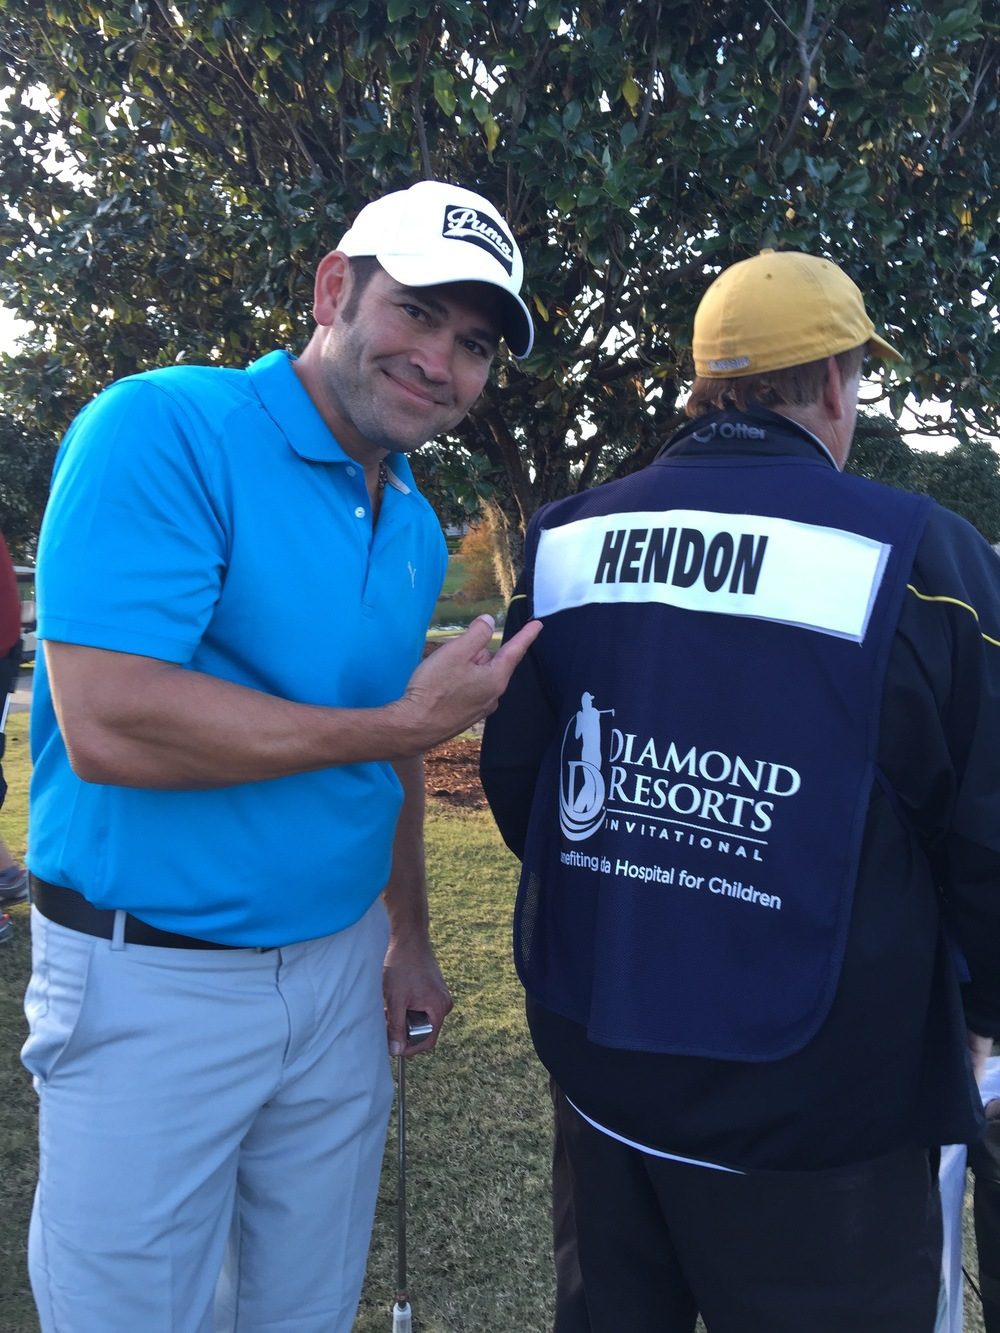 Rob and Johnny Damon, Major League outfielder who played for the Boston Red Sox and New York Yankees, played golf together to raise money for Florida Hospital for Children